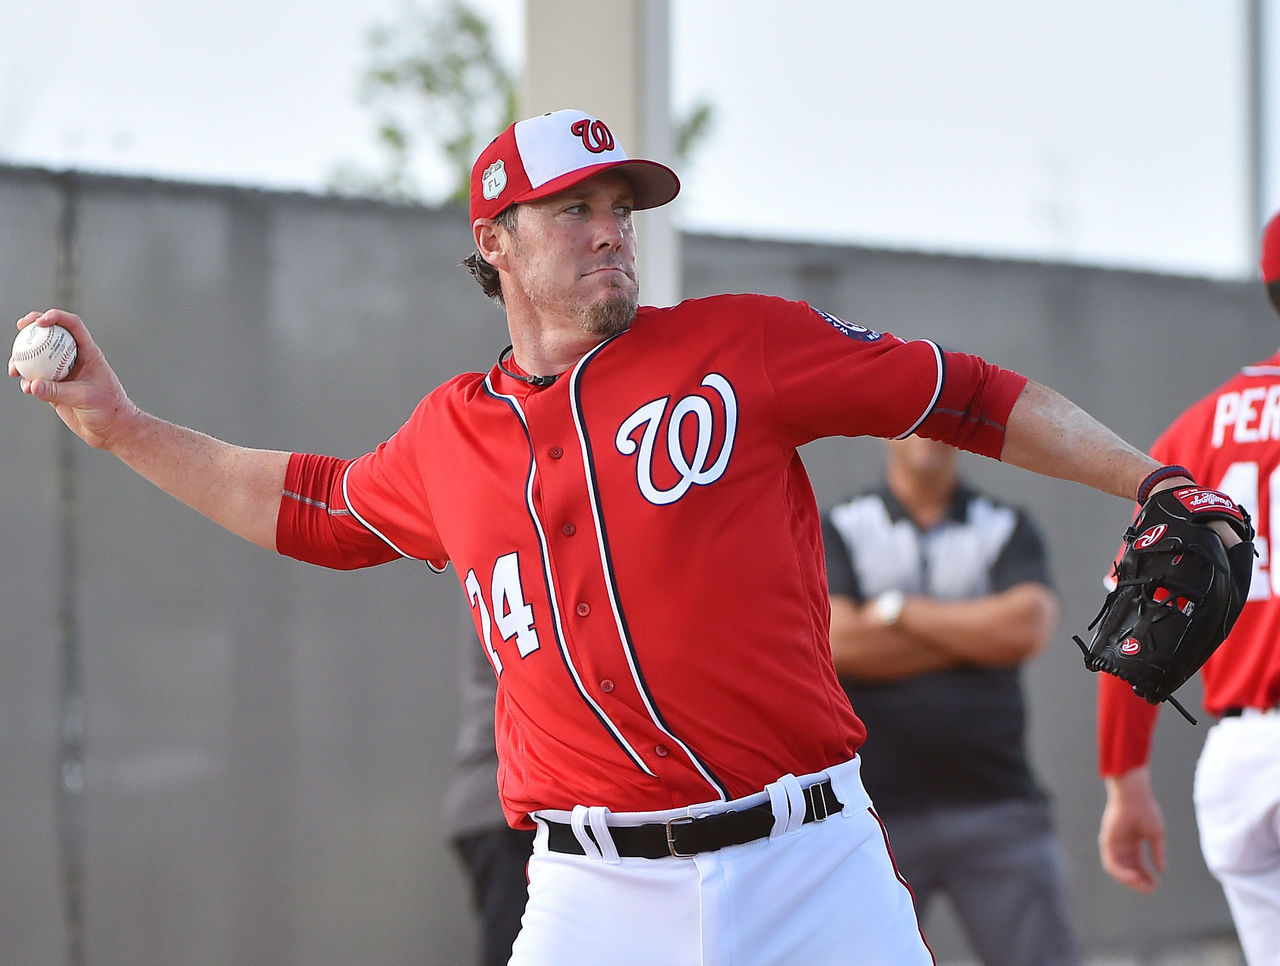 Cropped_2017-02-16t164355z_588125703_nocid_rtrmadp_3_mlb-washington-nationals-workouts